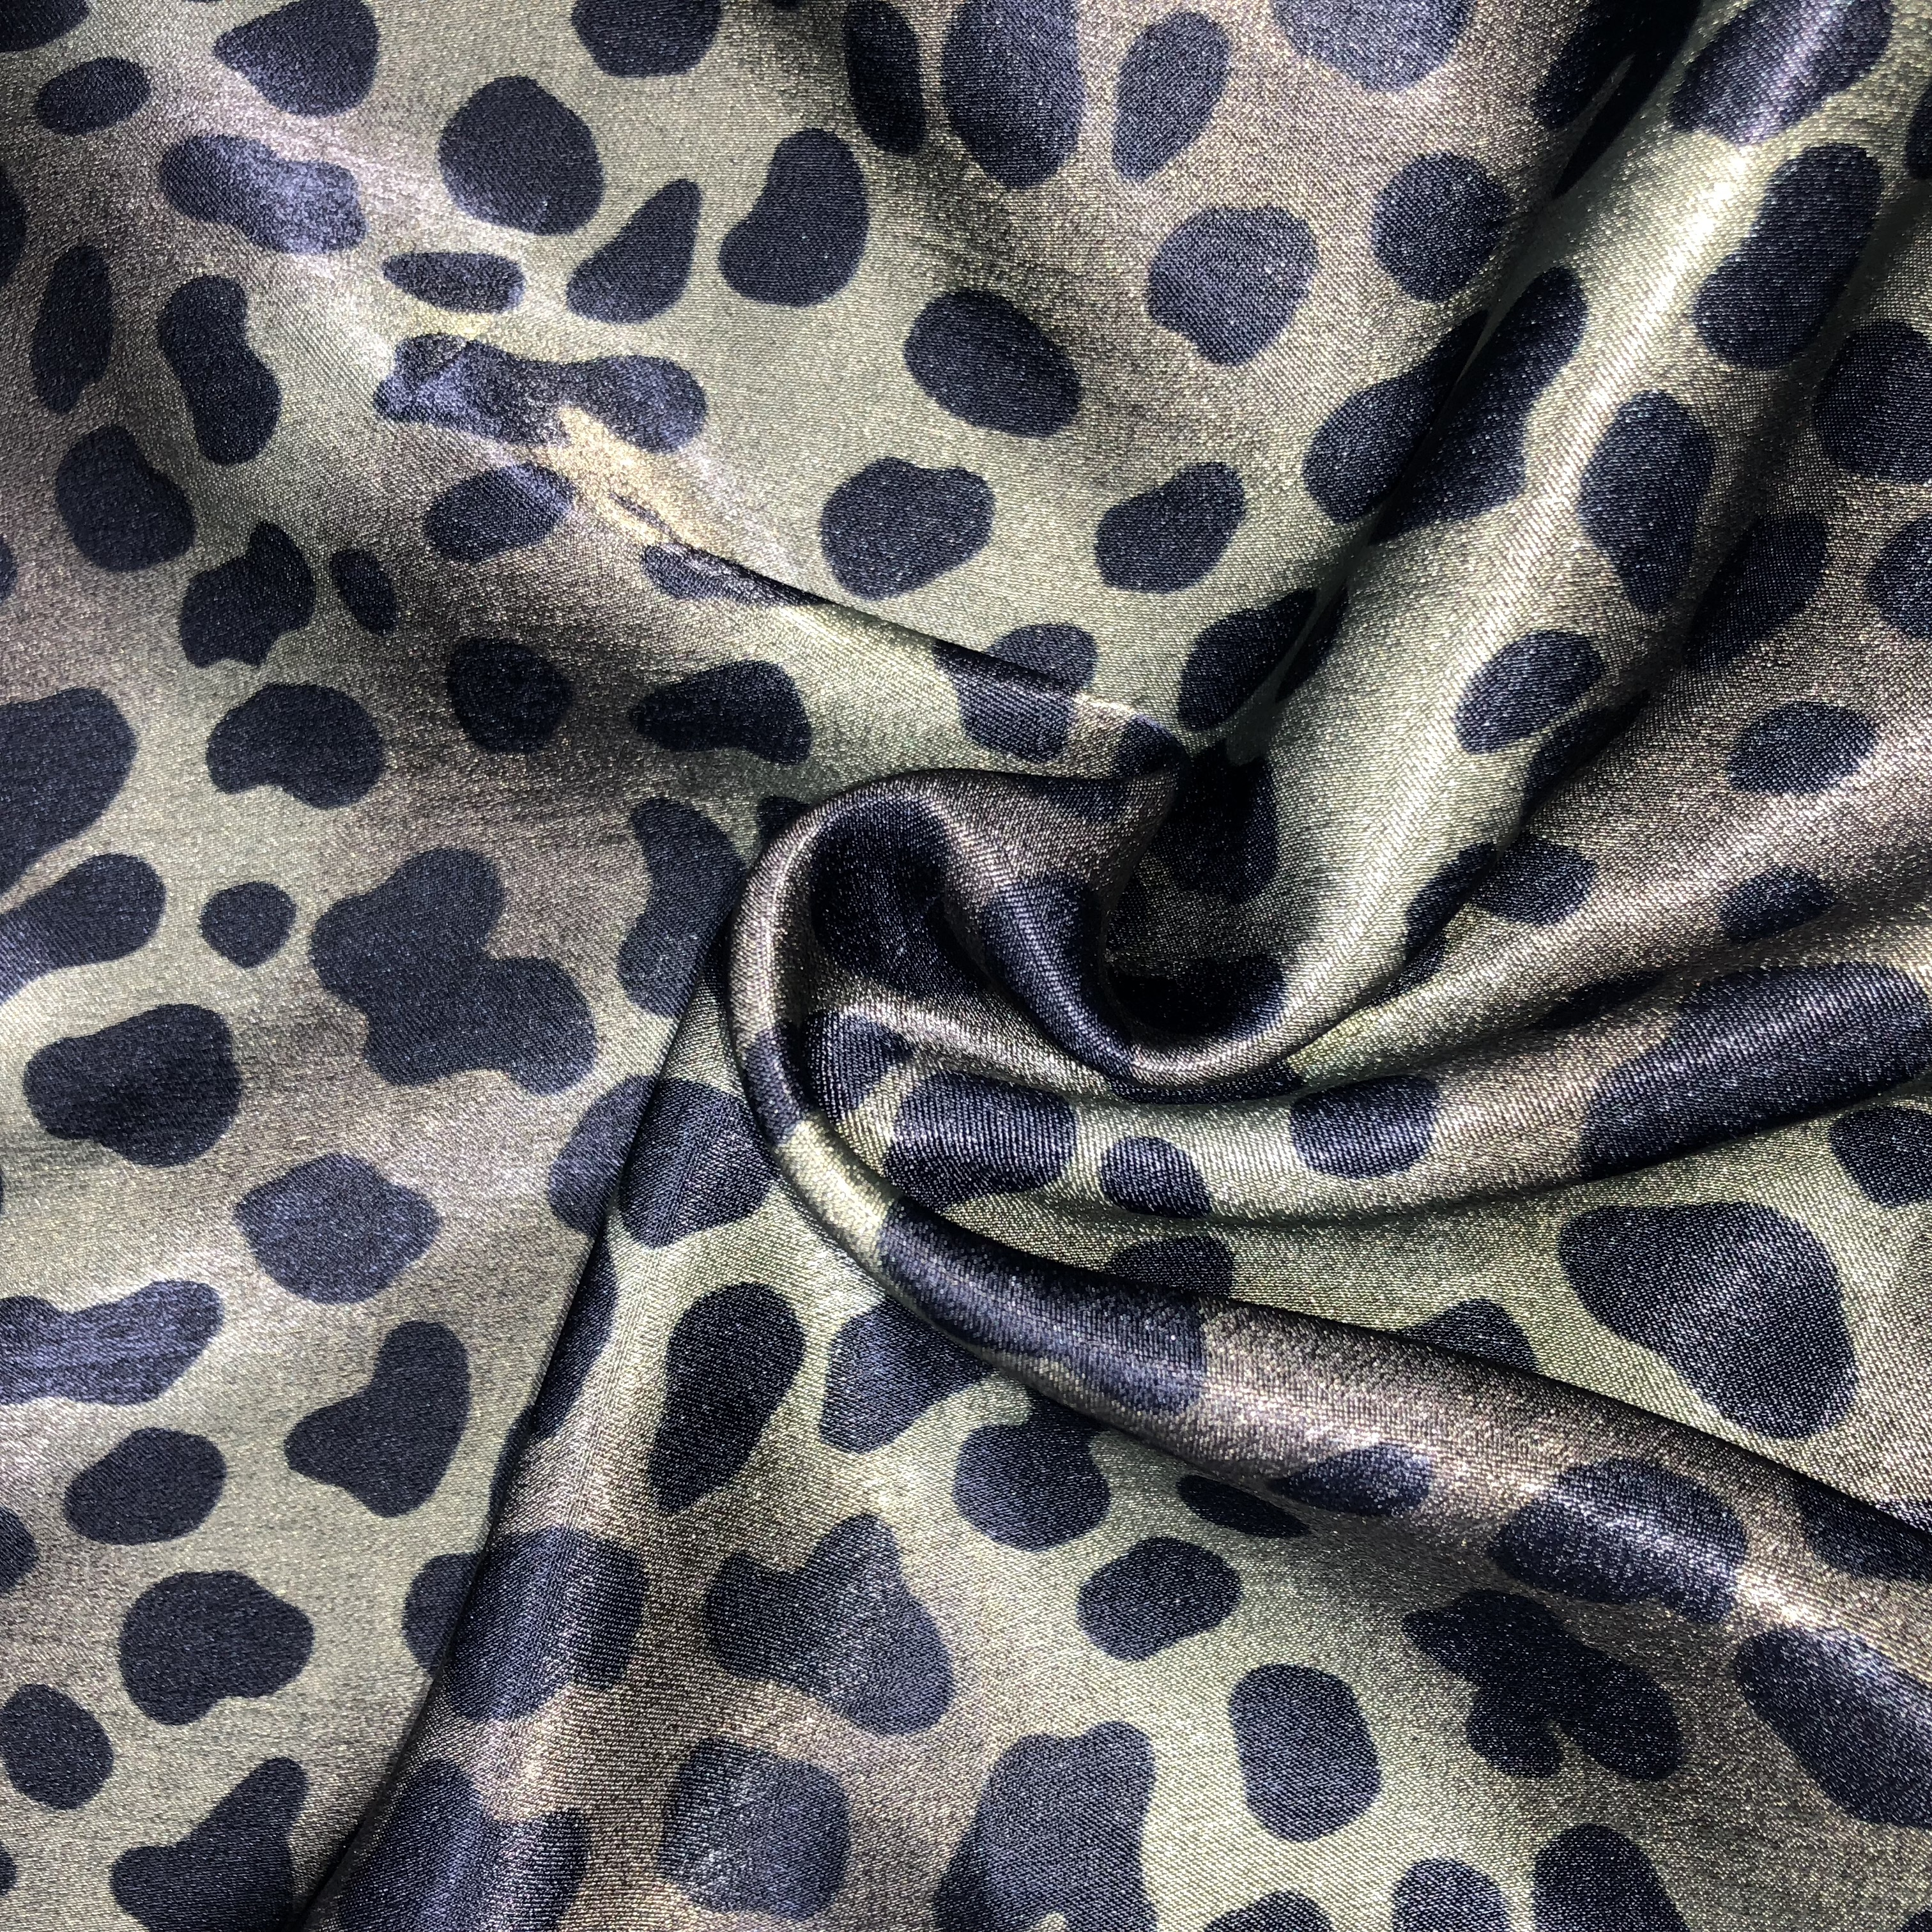 polyester leopard or animal printed chiffon fabric for summer clothes dress <strong>thickness</strong>